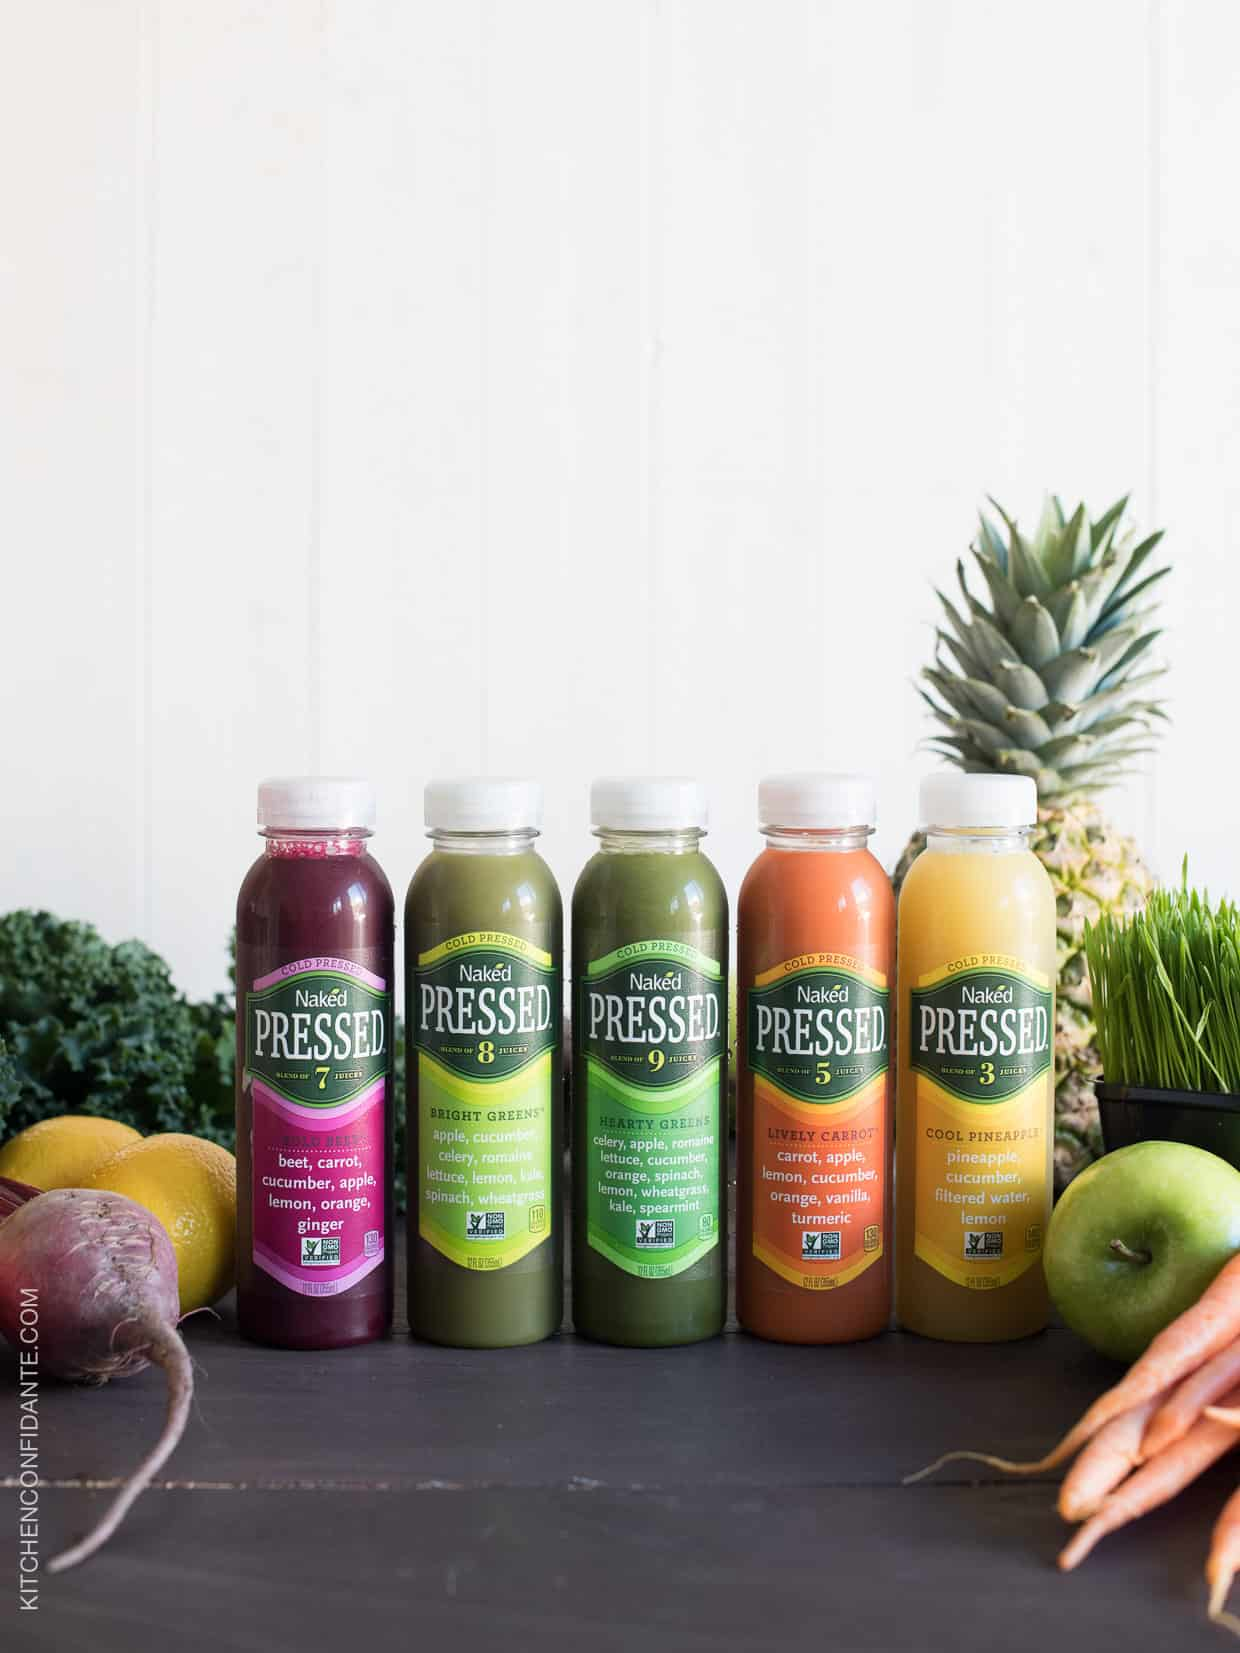 Naked Cold Pressed Juices have no added sugar, no preservatives and are non-GMO verified.